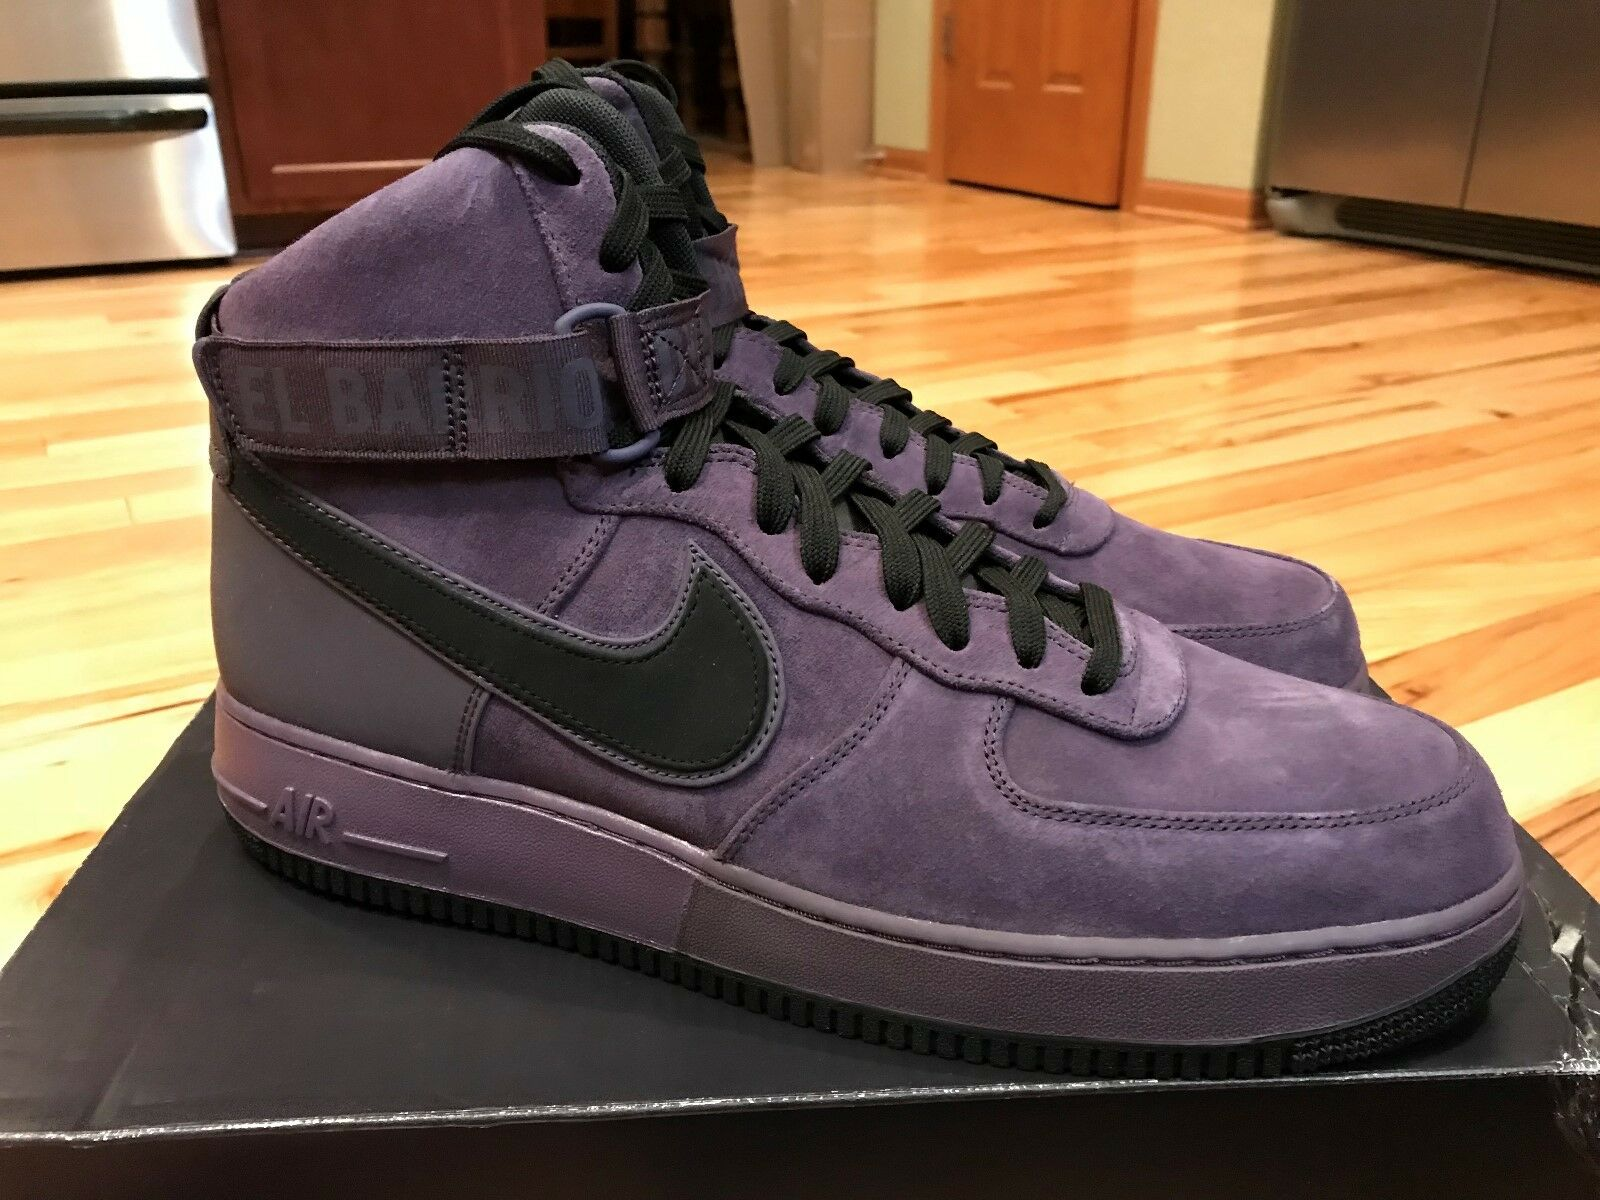 Nike Air Force 1 Harlem One High '07 QS Harlem 1 Uptown Purple 573967-500 Men's Size 14 32f9d6